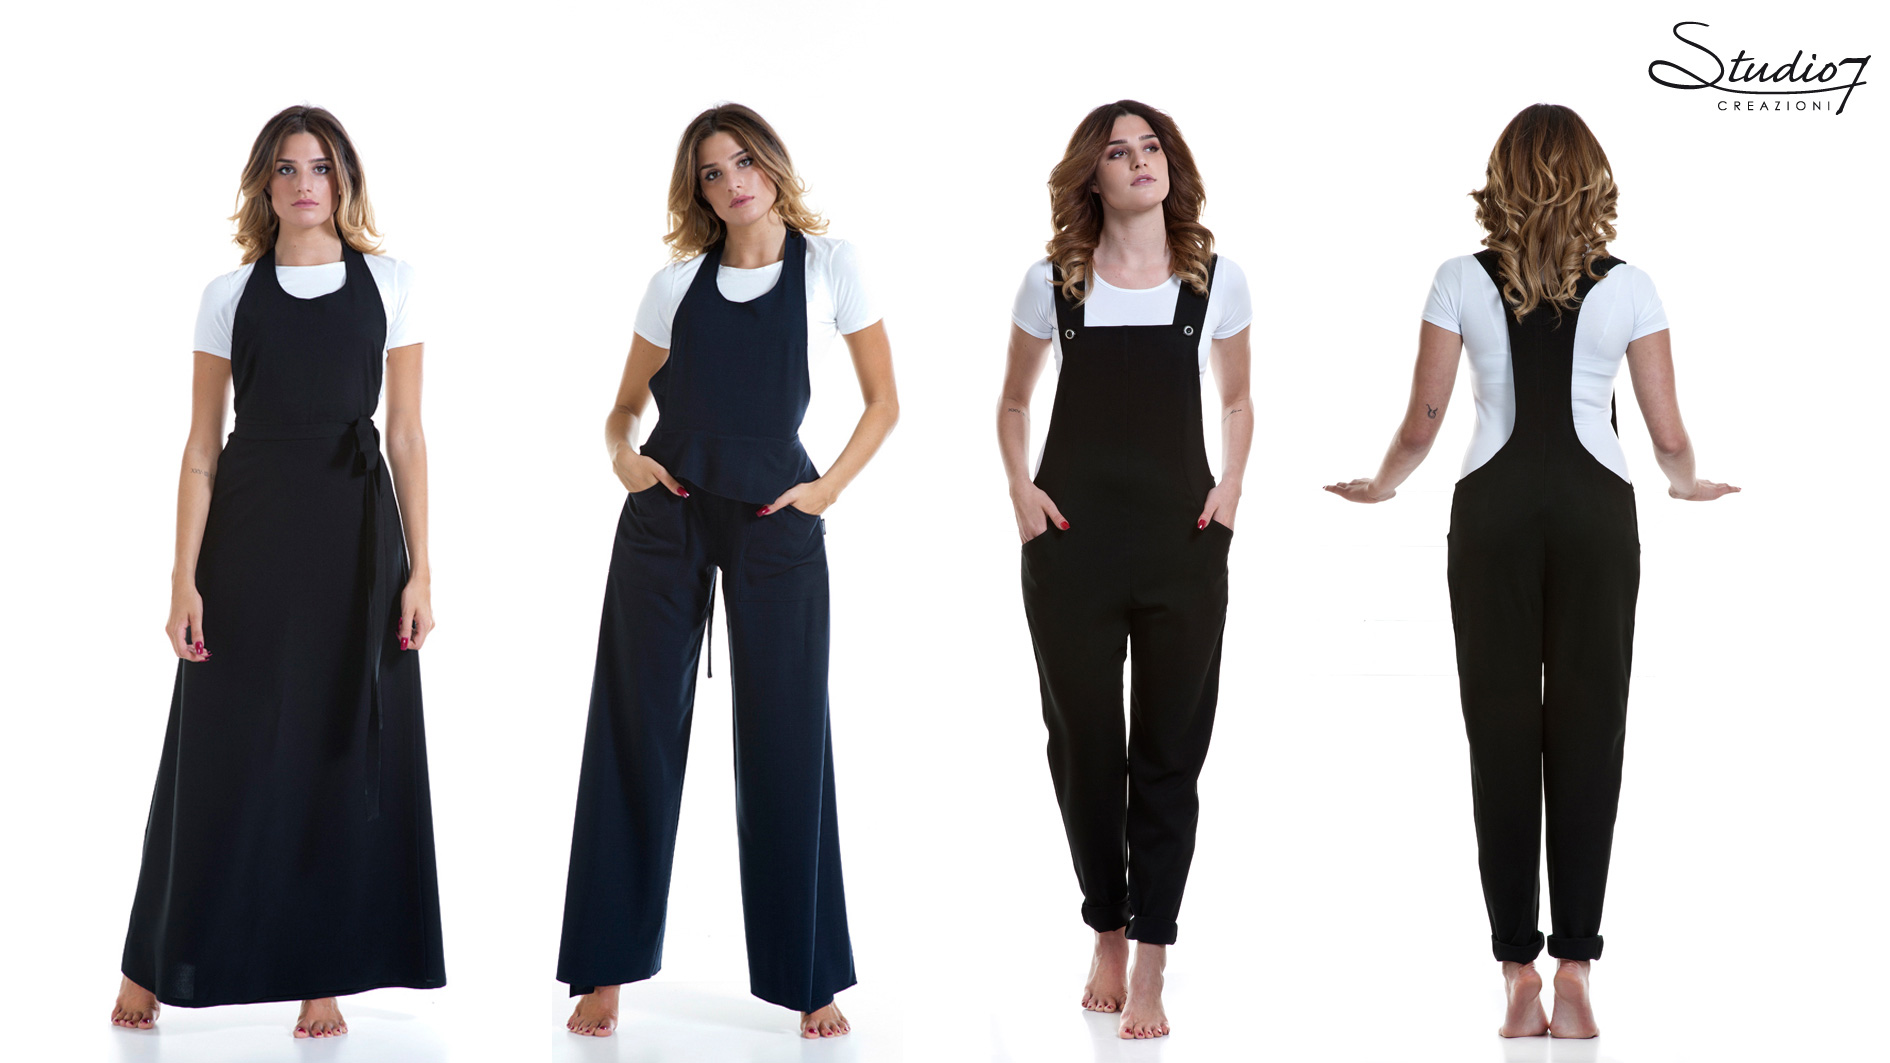 Suits and wraparound skirts for hairdressers and beauticians